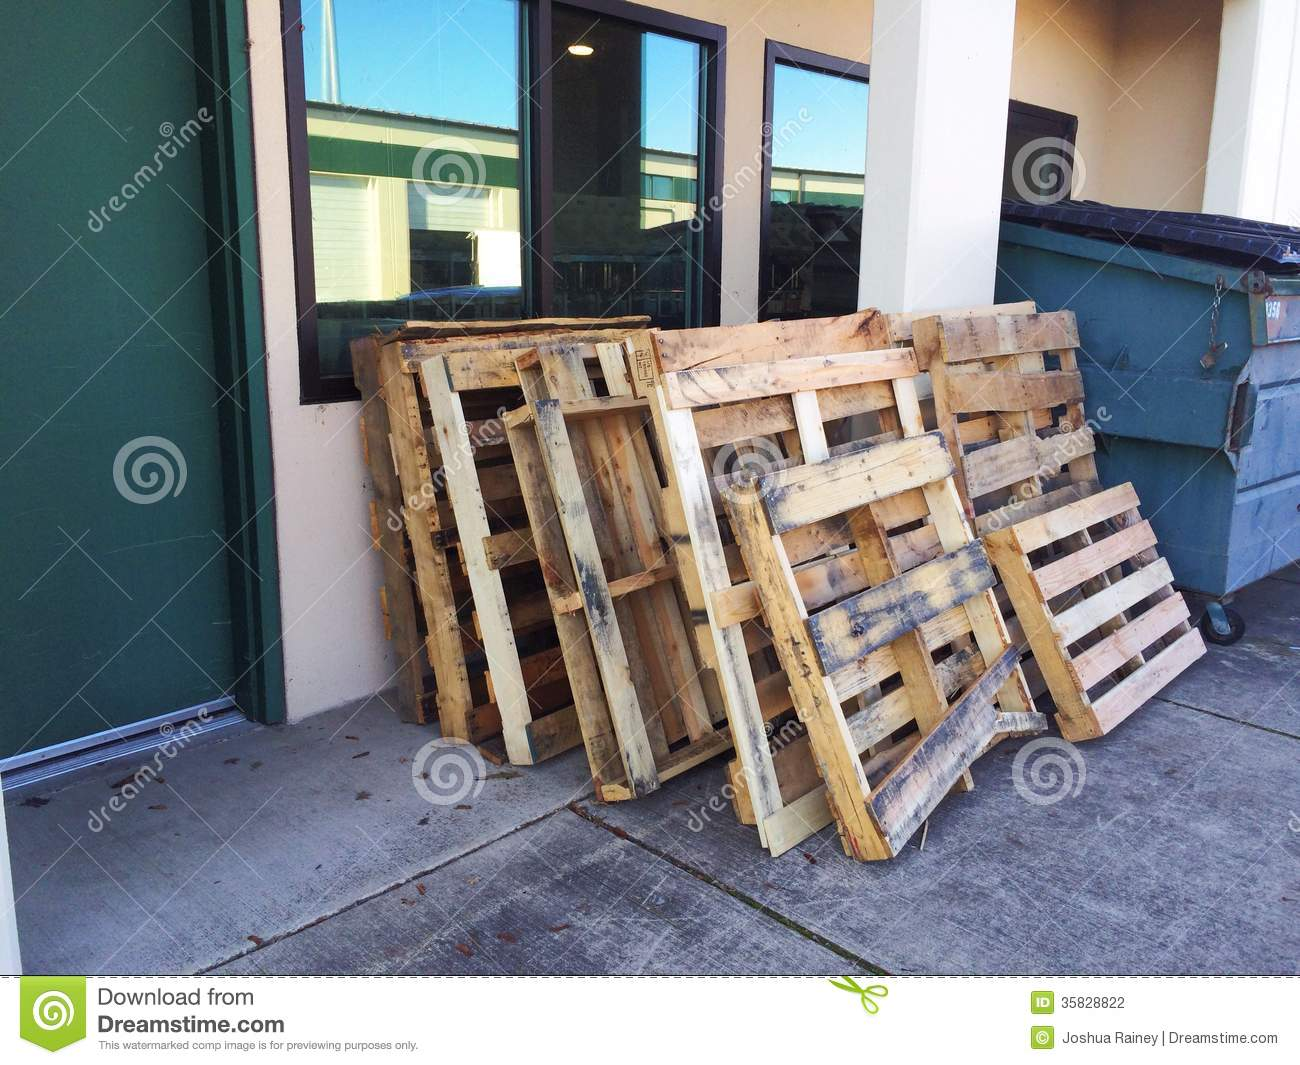 Ideas for Pallet Recycling Which Can Get You Business